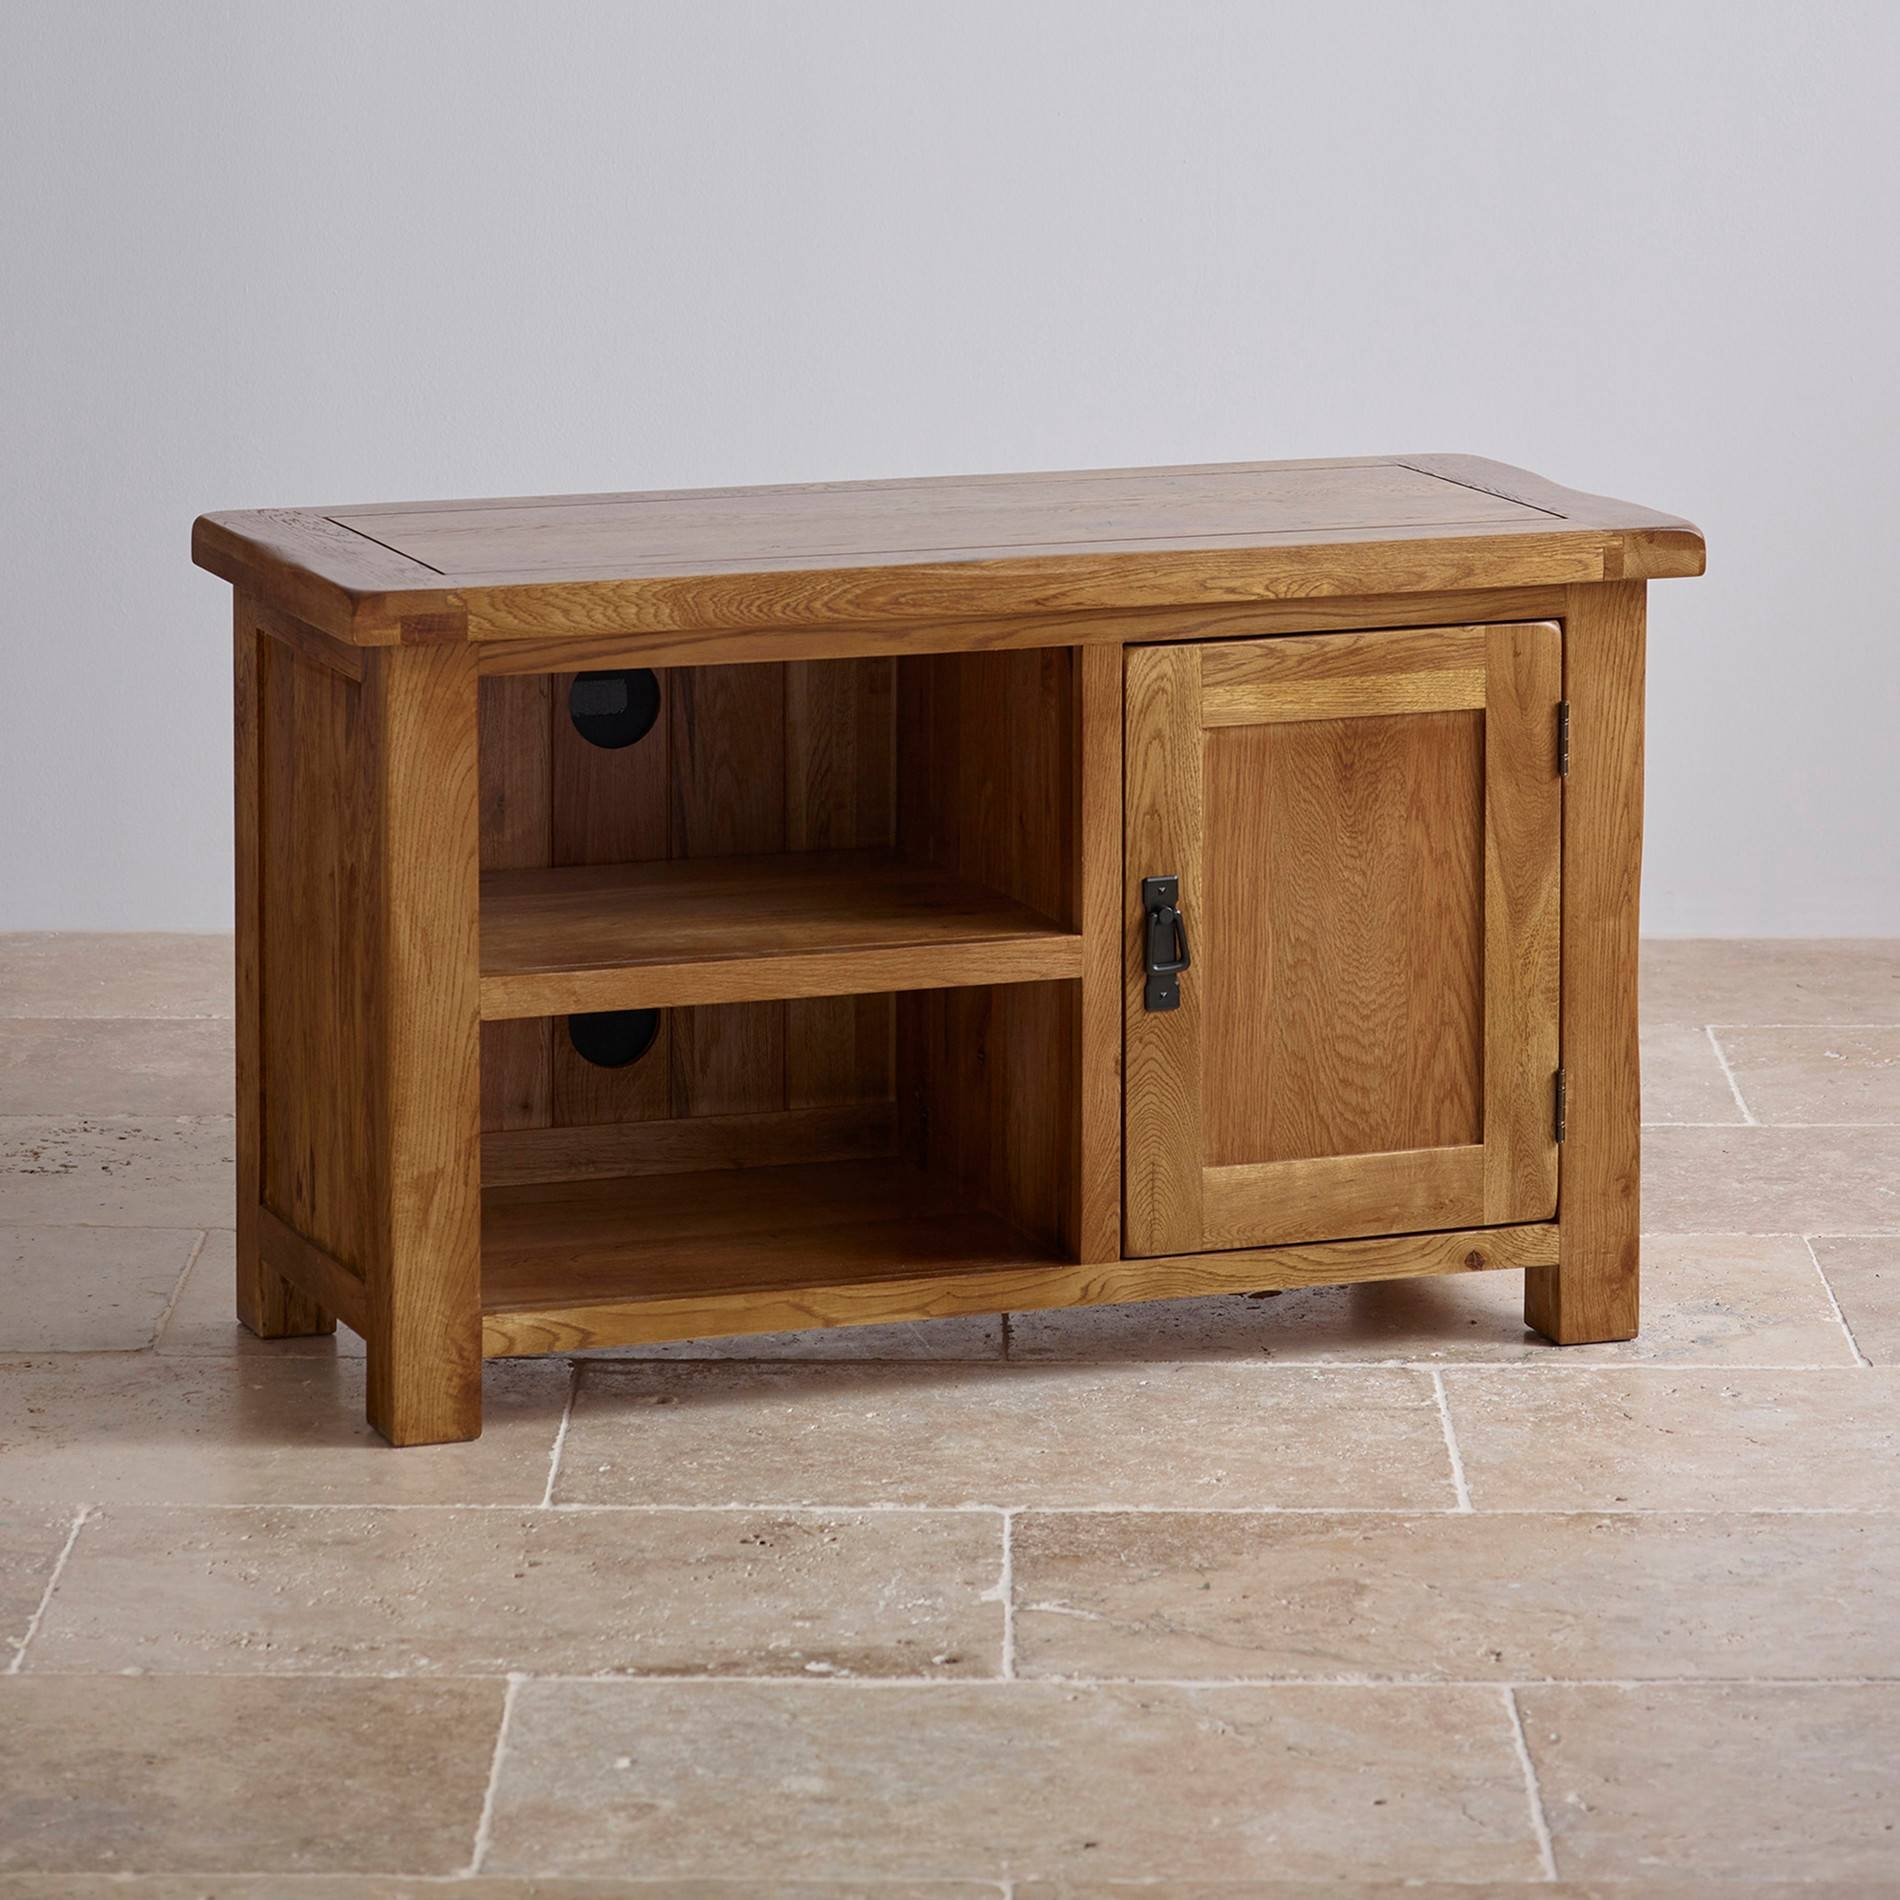 Original Rustic Tv Cabinet In Solid Oak | Oak Furniture Land With Regard To Solid Oak Tv Cabinets (View 7 of 15)